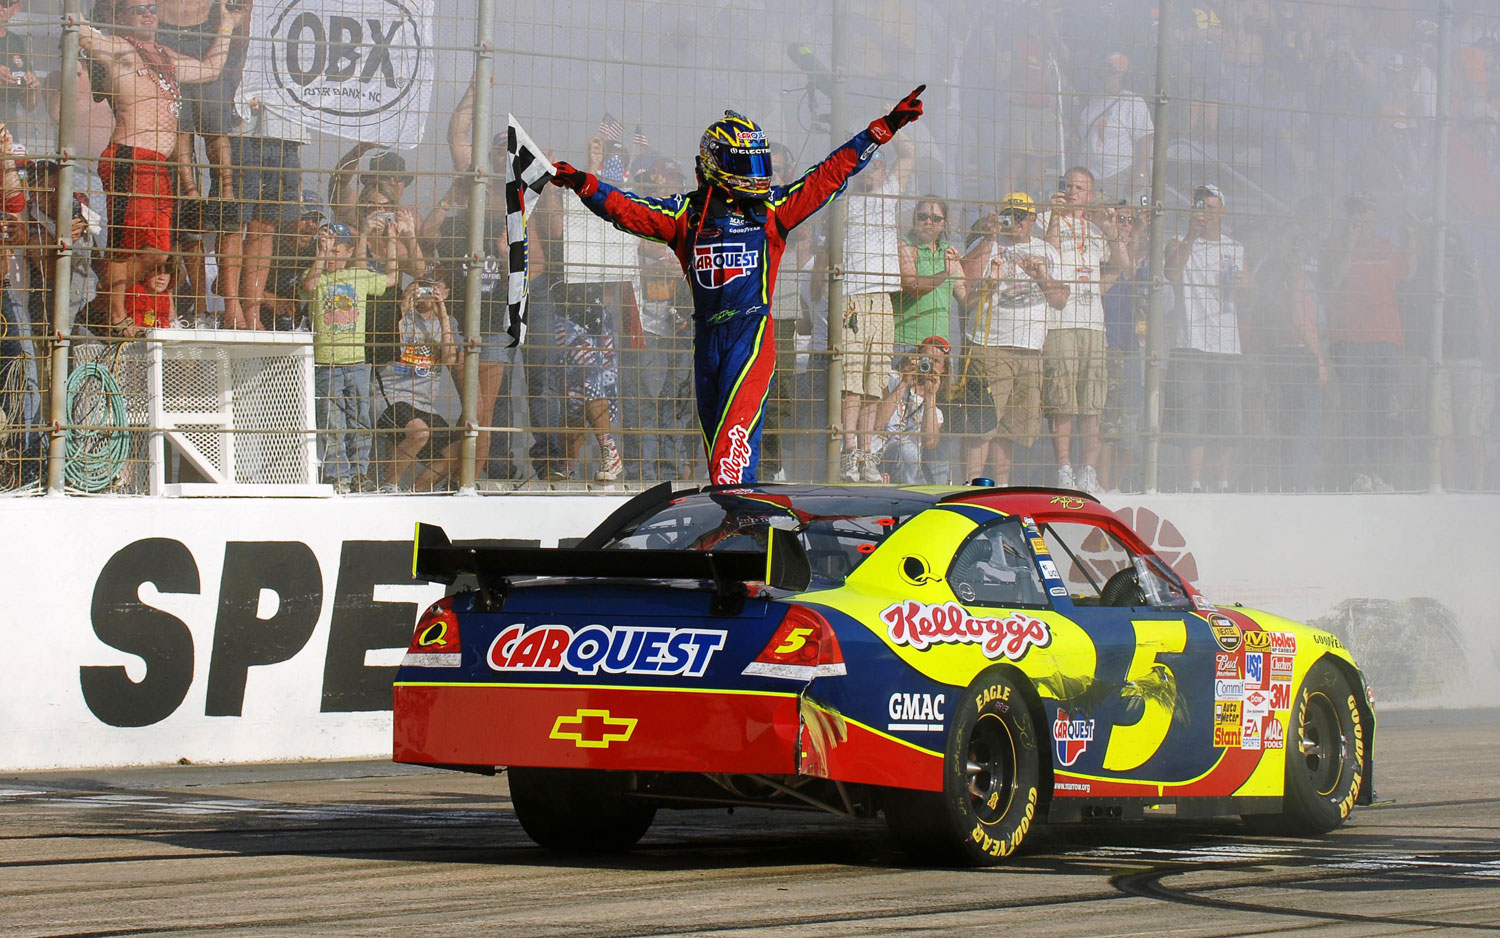 Chevy Impala Racecar After Win1